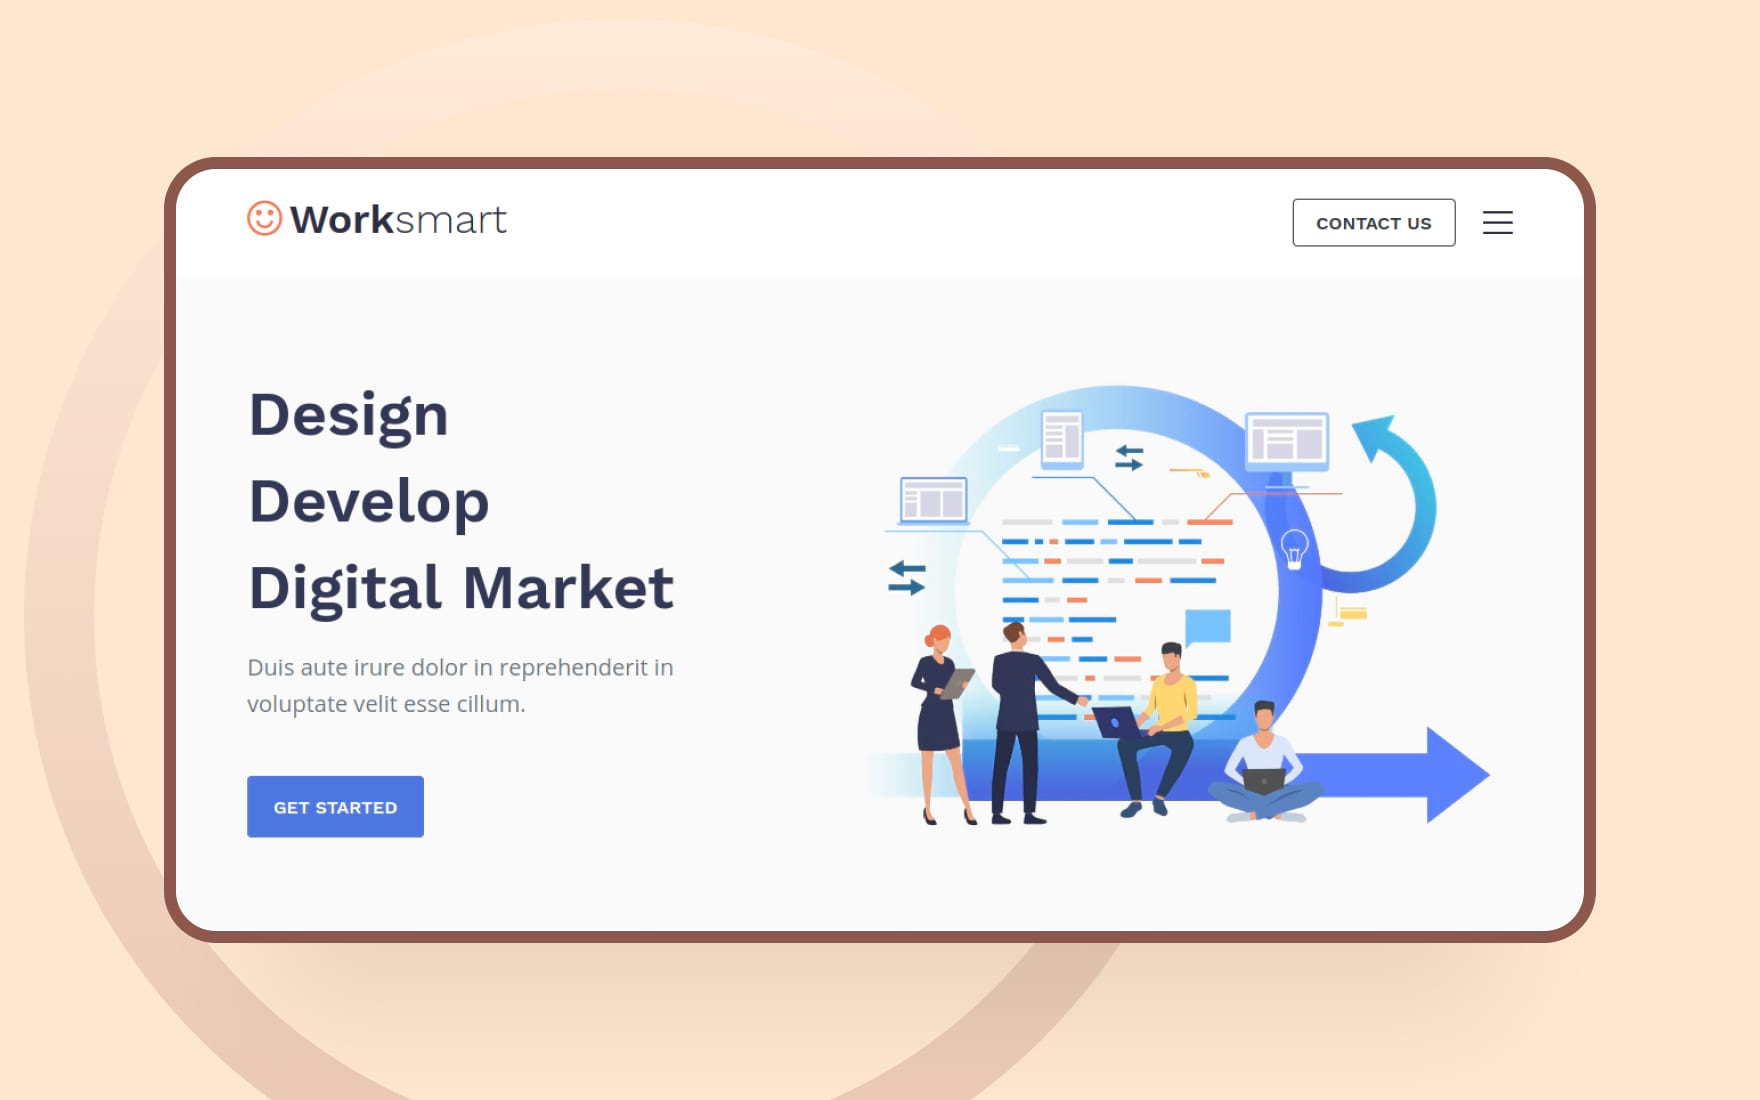 worksmart website template